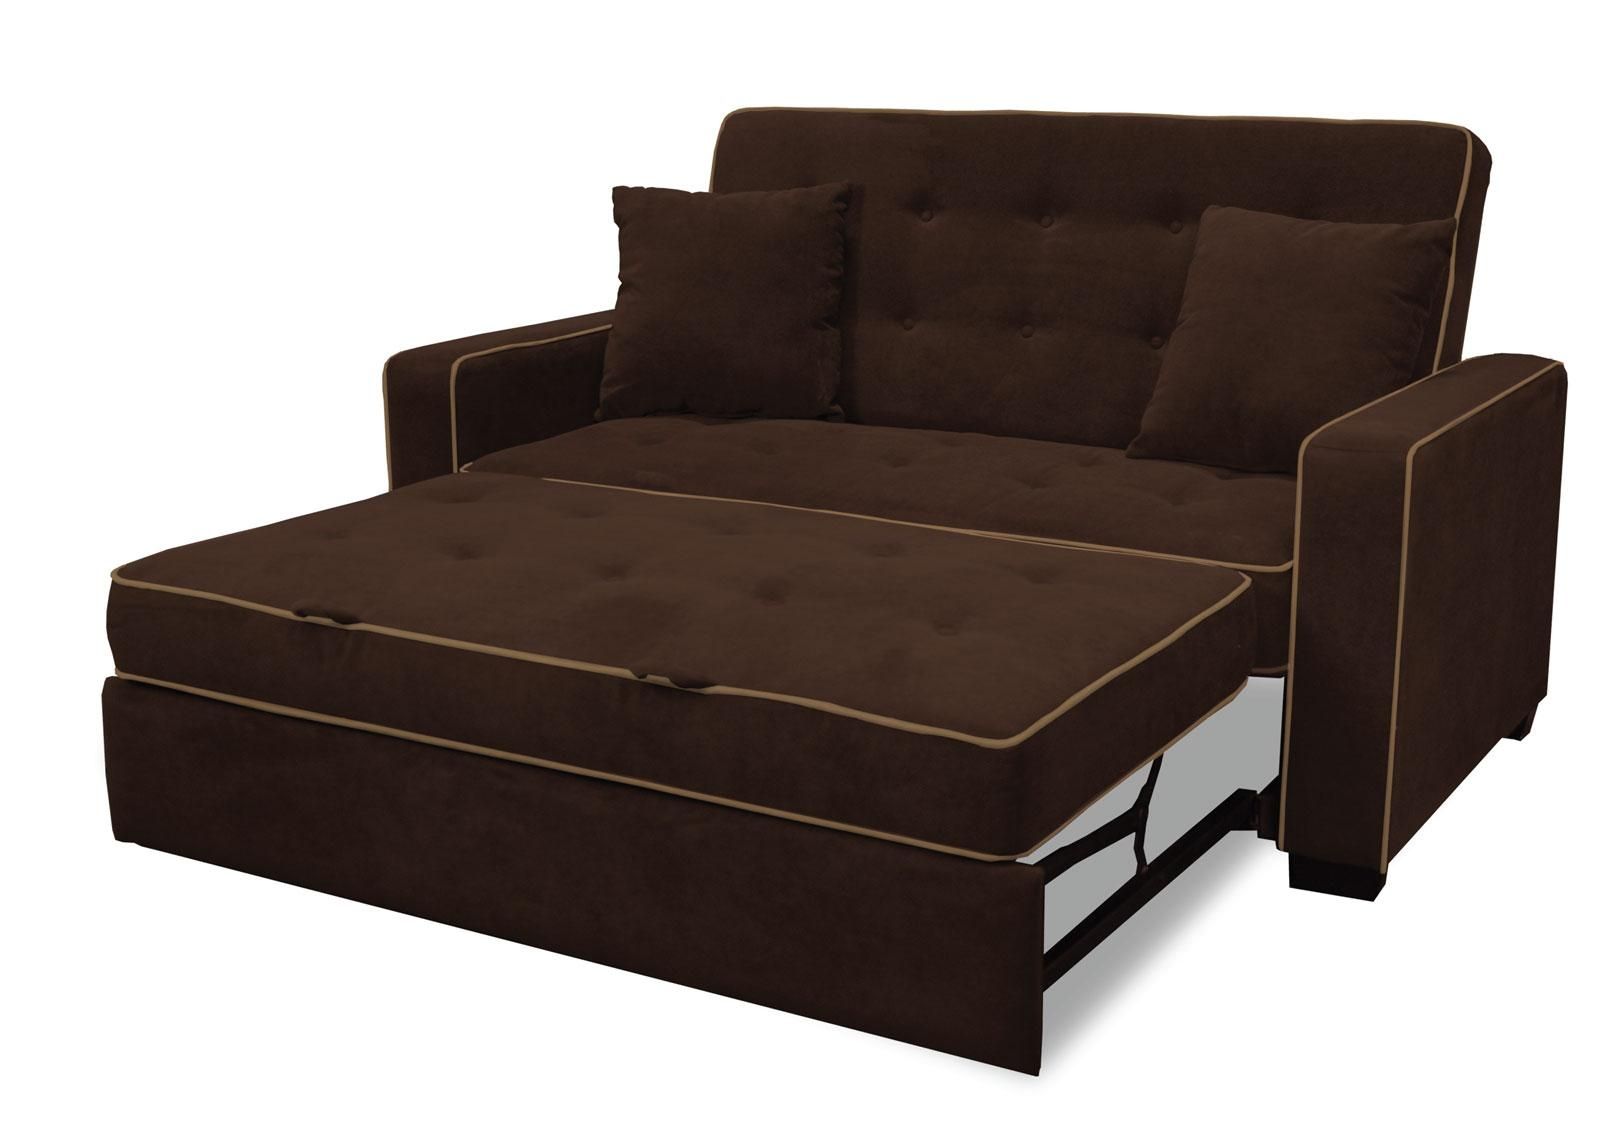 Sofa Tufted Leather Sleeper Martha | Tamingthesat For Tufted Sleeper Sofas (Image 11 of 20)